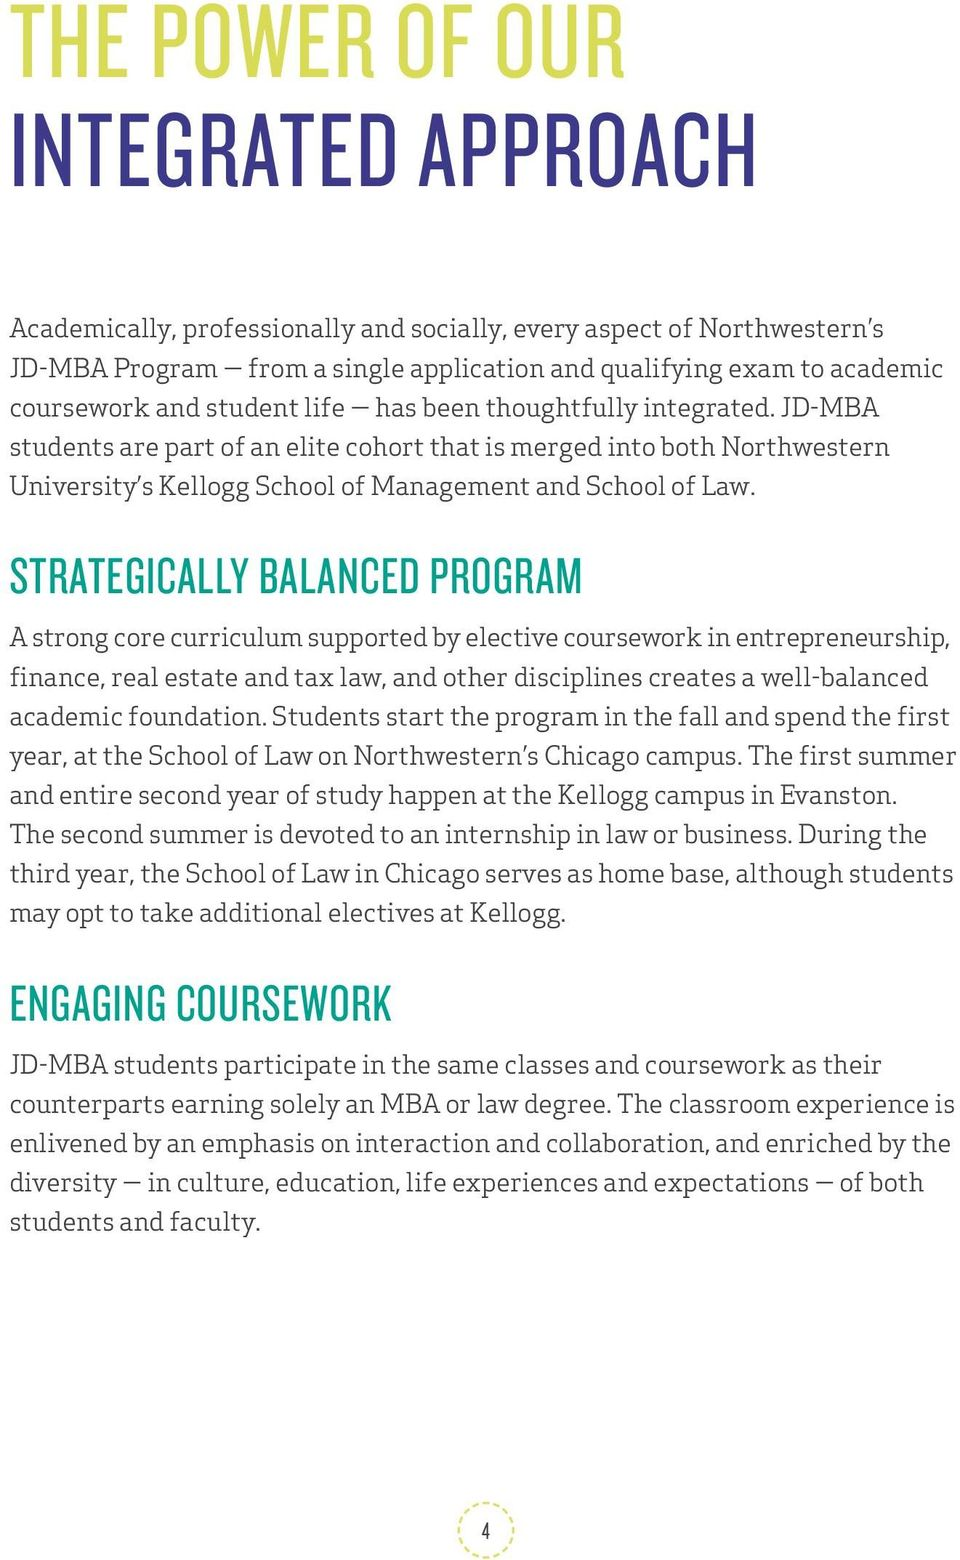 STRATEGICALLY BALANCED PROGRAM A strong core curriculum supported by elective coursework in entrepreneurship, finance, real estate and tax law, and other disciplines creates a well-balanced academic